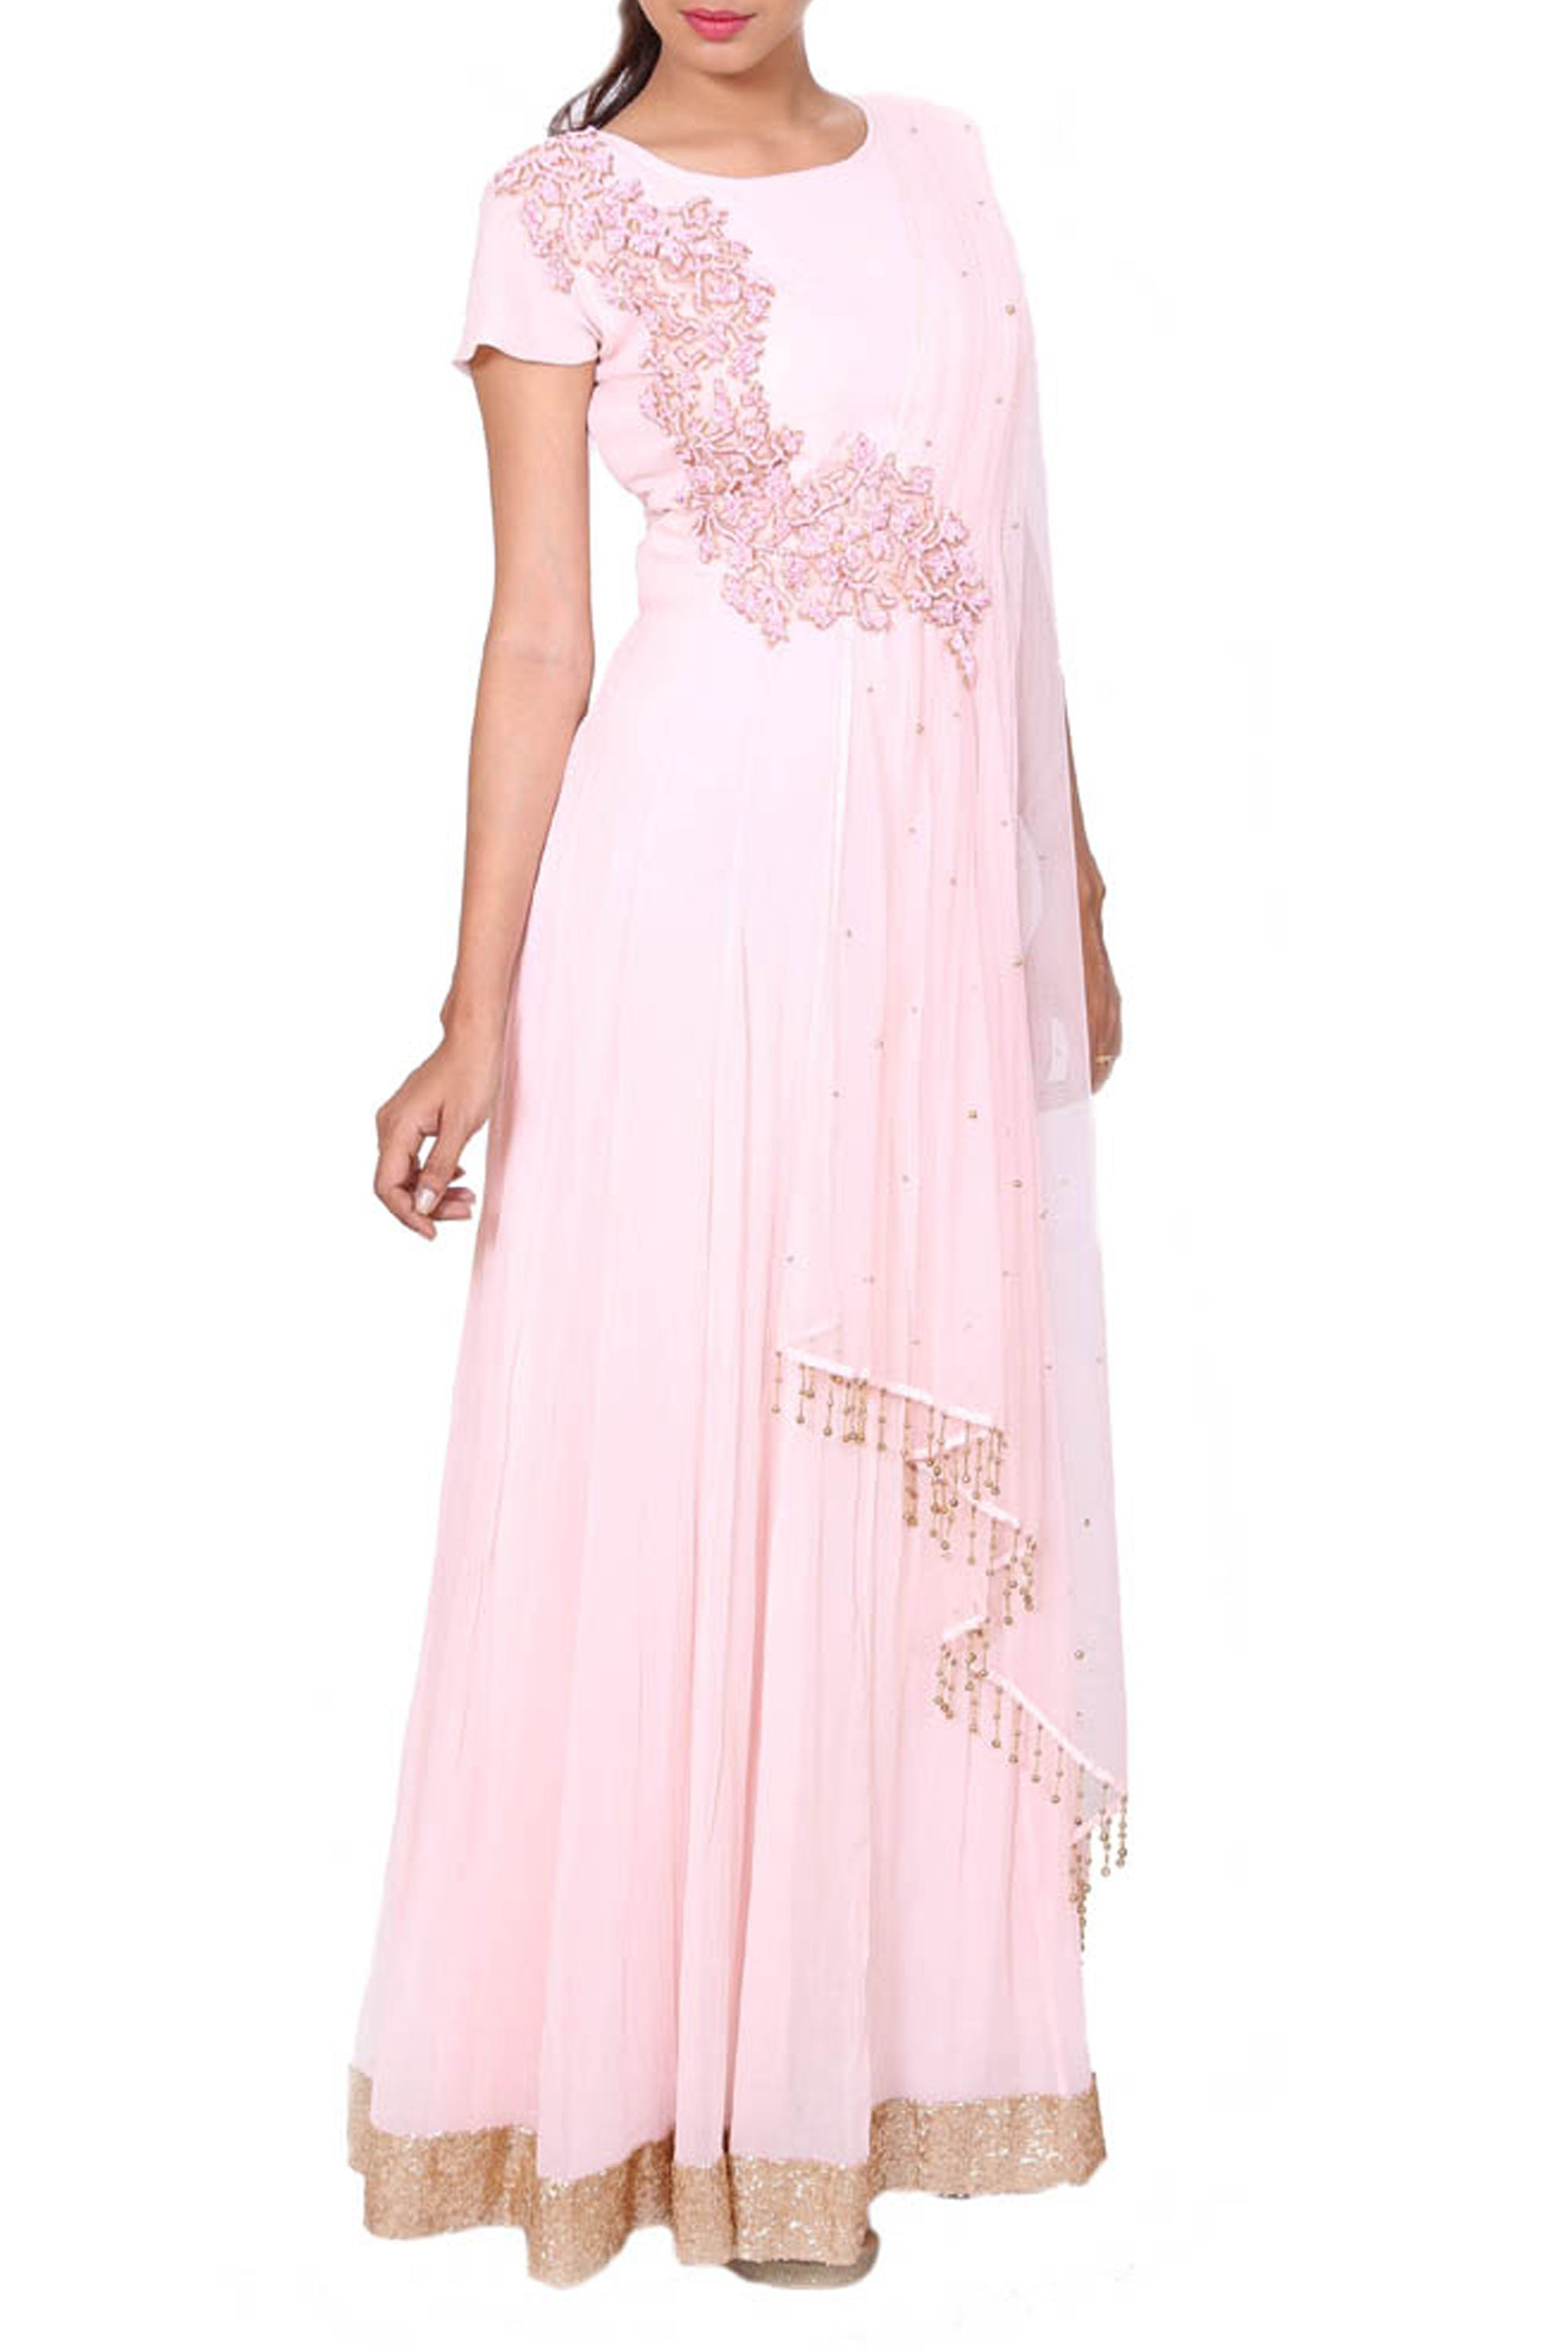 Intricately Embroidered Powdery Pink Gown Side